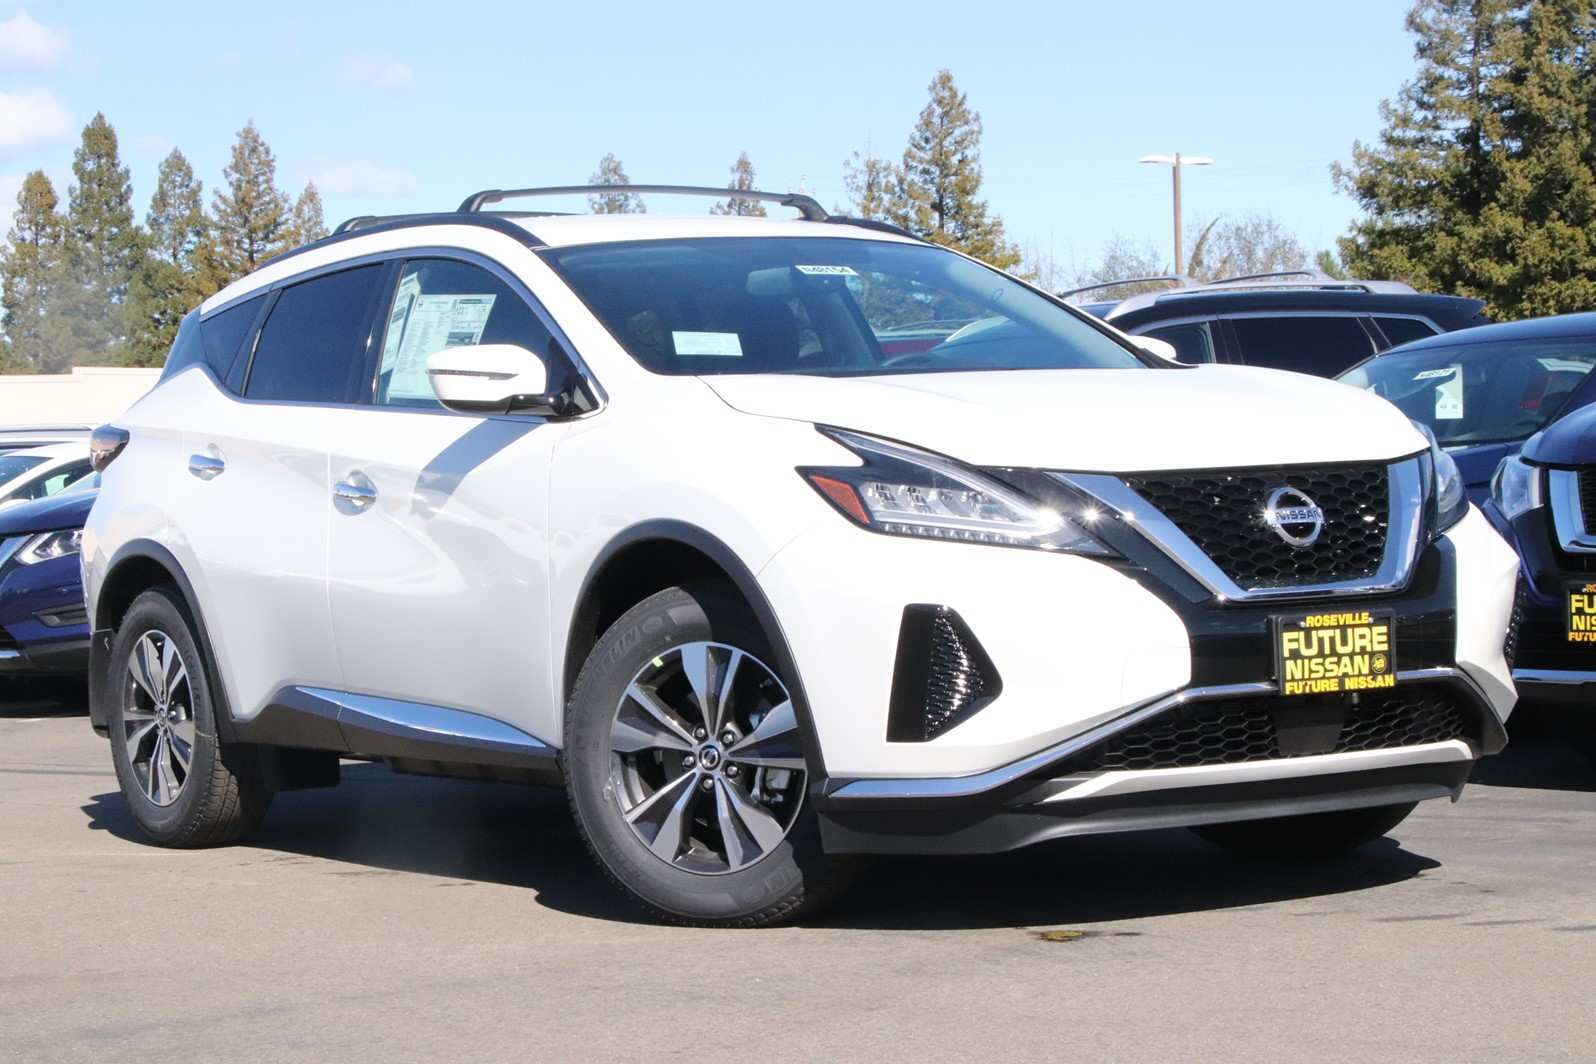 67 New 2019 Nissan Murano Rumors